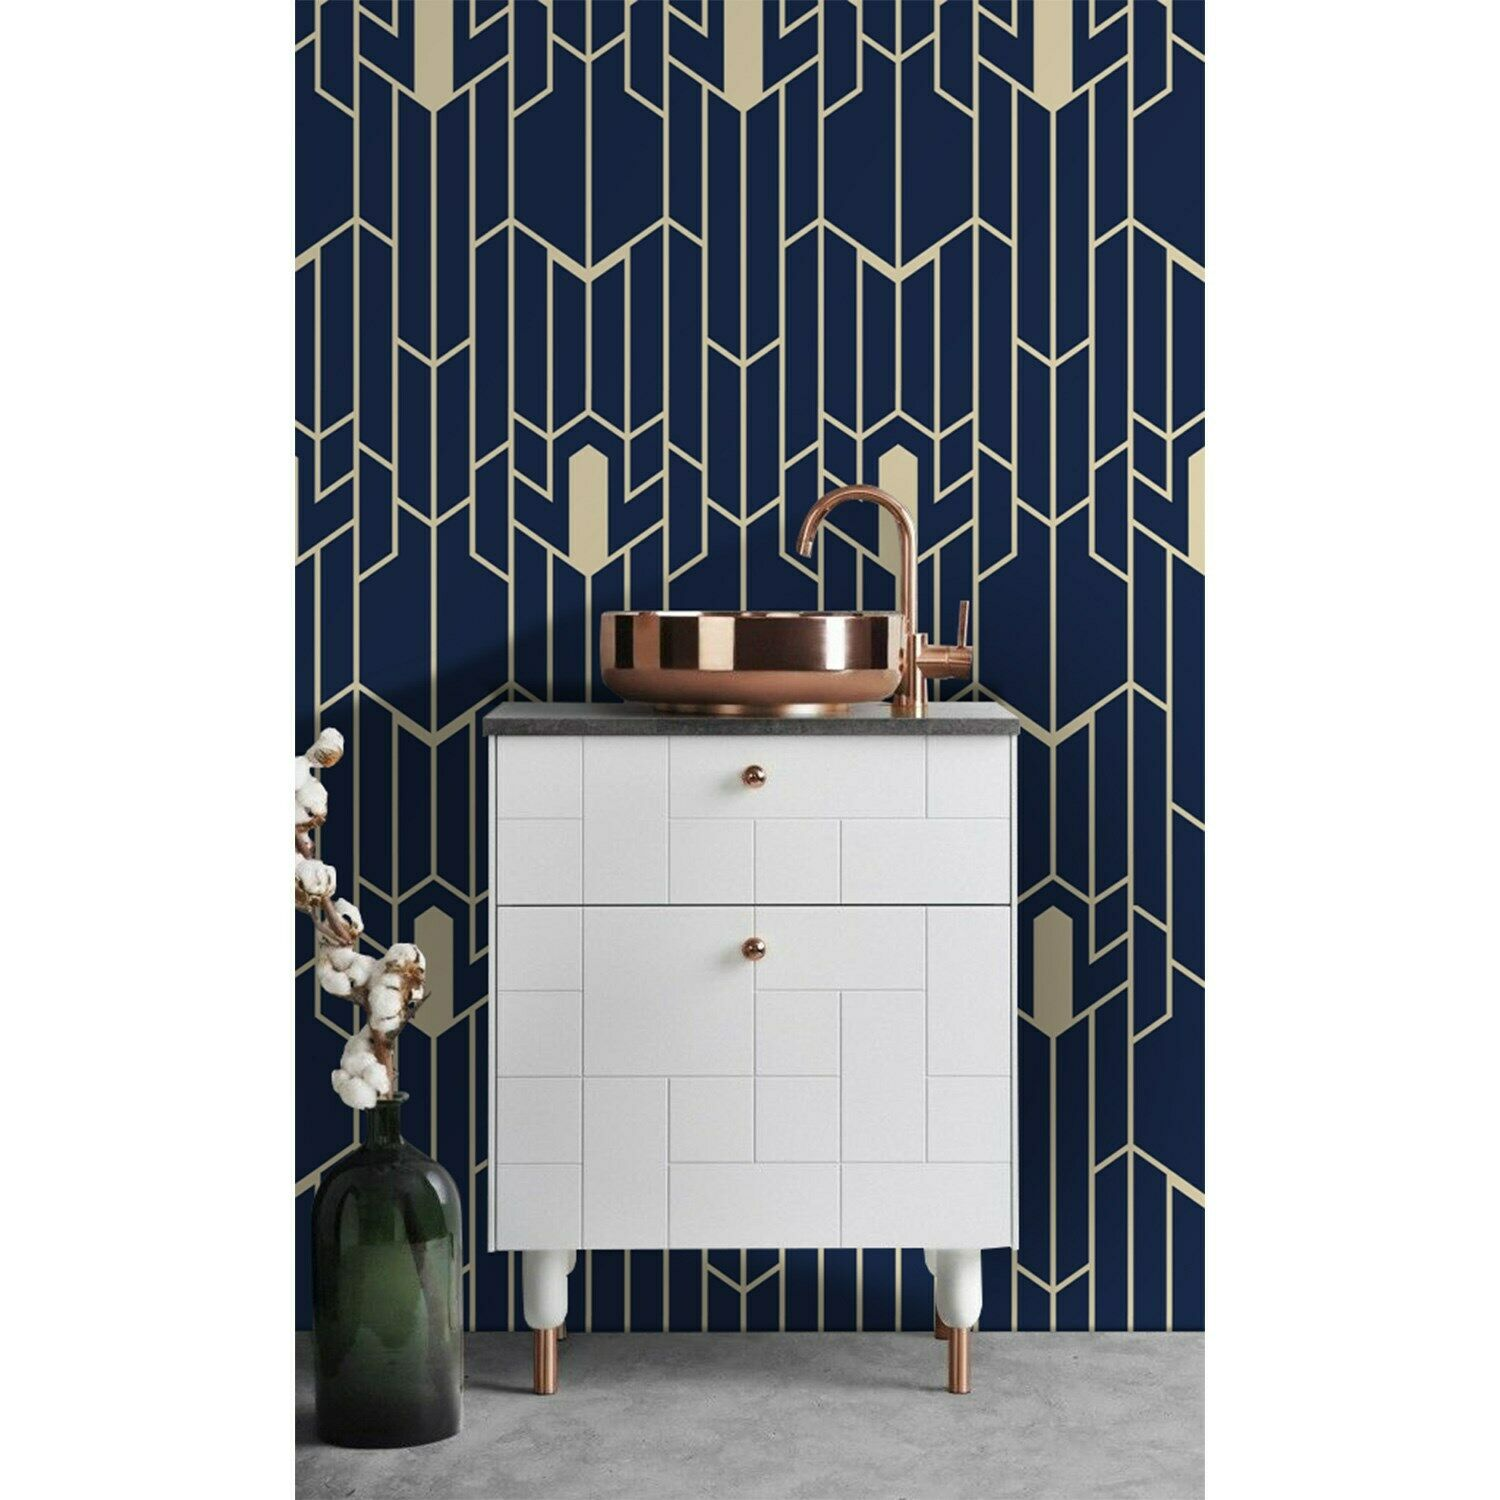 Geometric pattern Non-Woven wallpaper Navy and Gold wall Home Mural Roll Decor